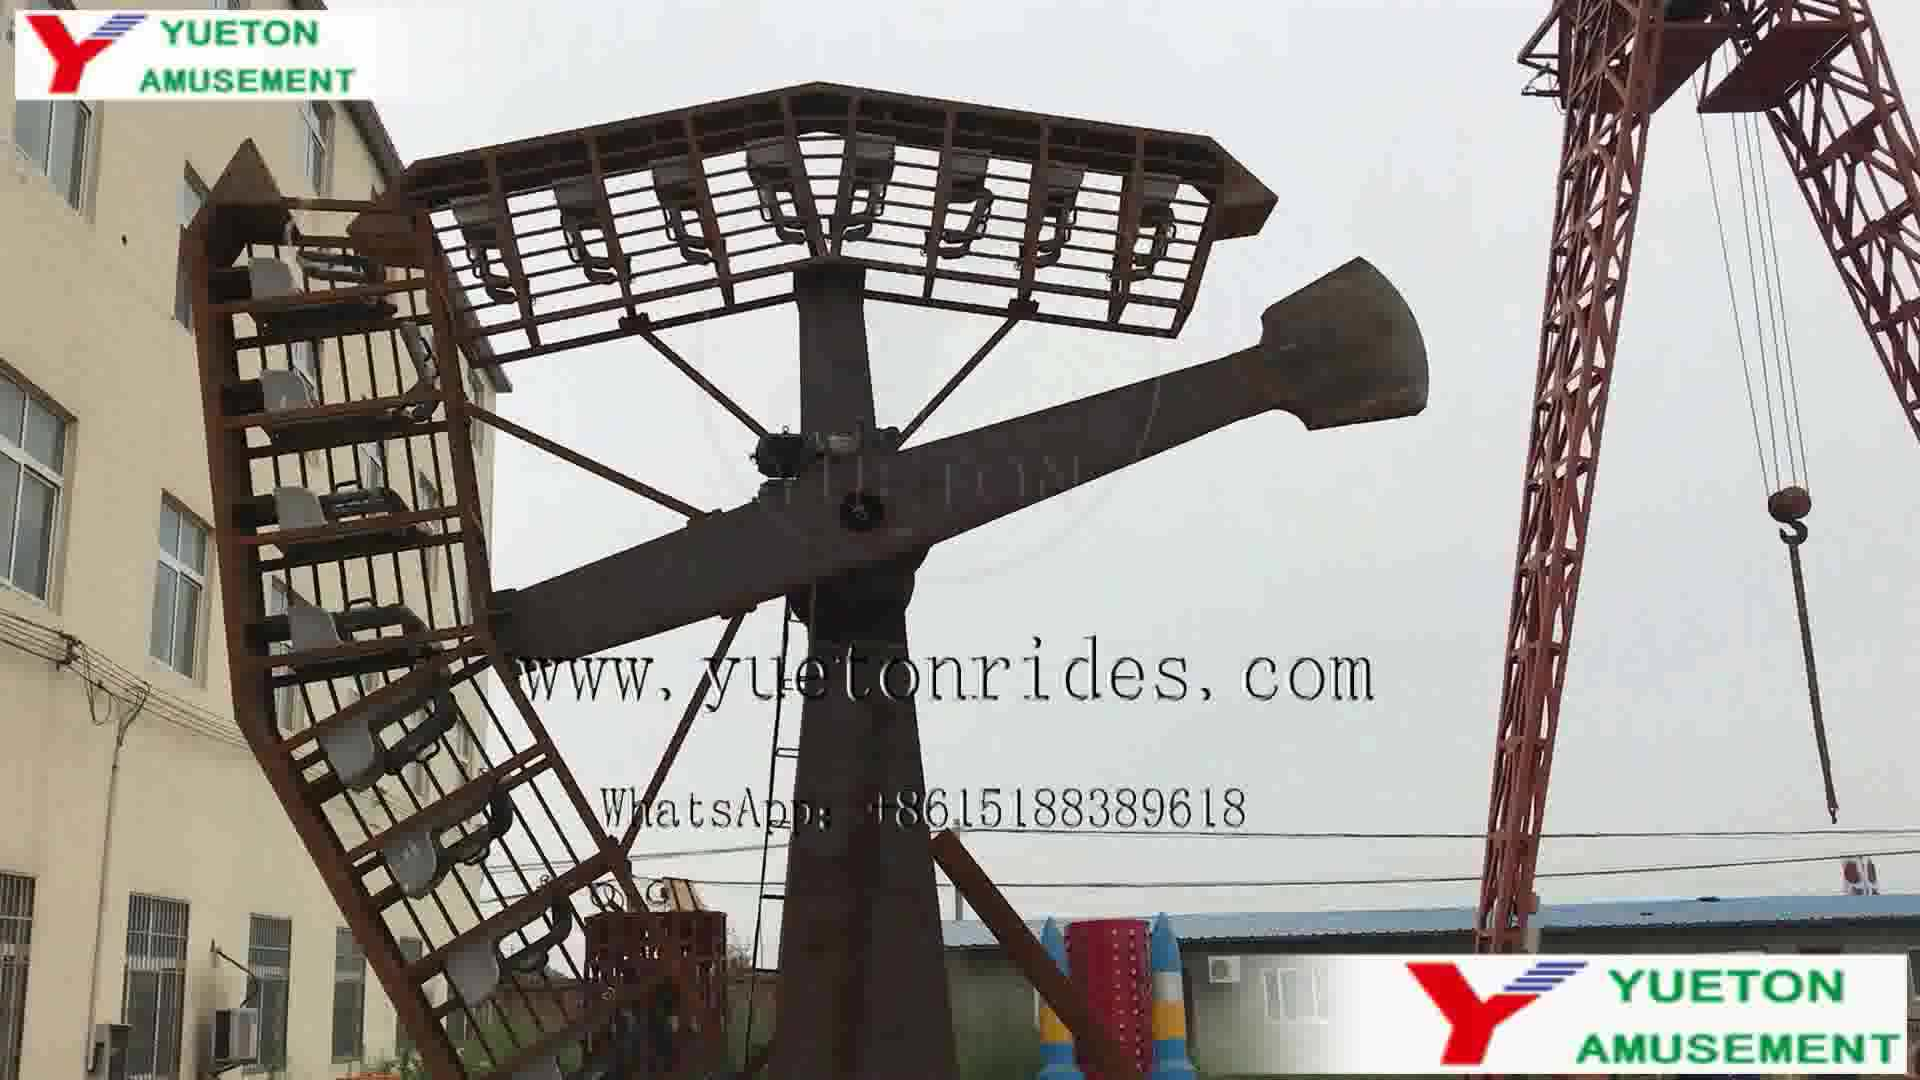 Buy Manege Fair Carnival Arm Amusement Park Thrill Rides Swing Meteor Hammer Twin Twister The Typhoon Kamikaze Ride For Sale